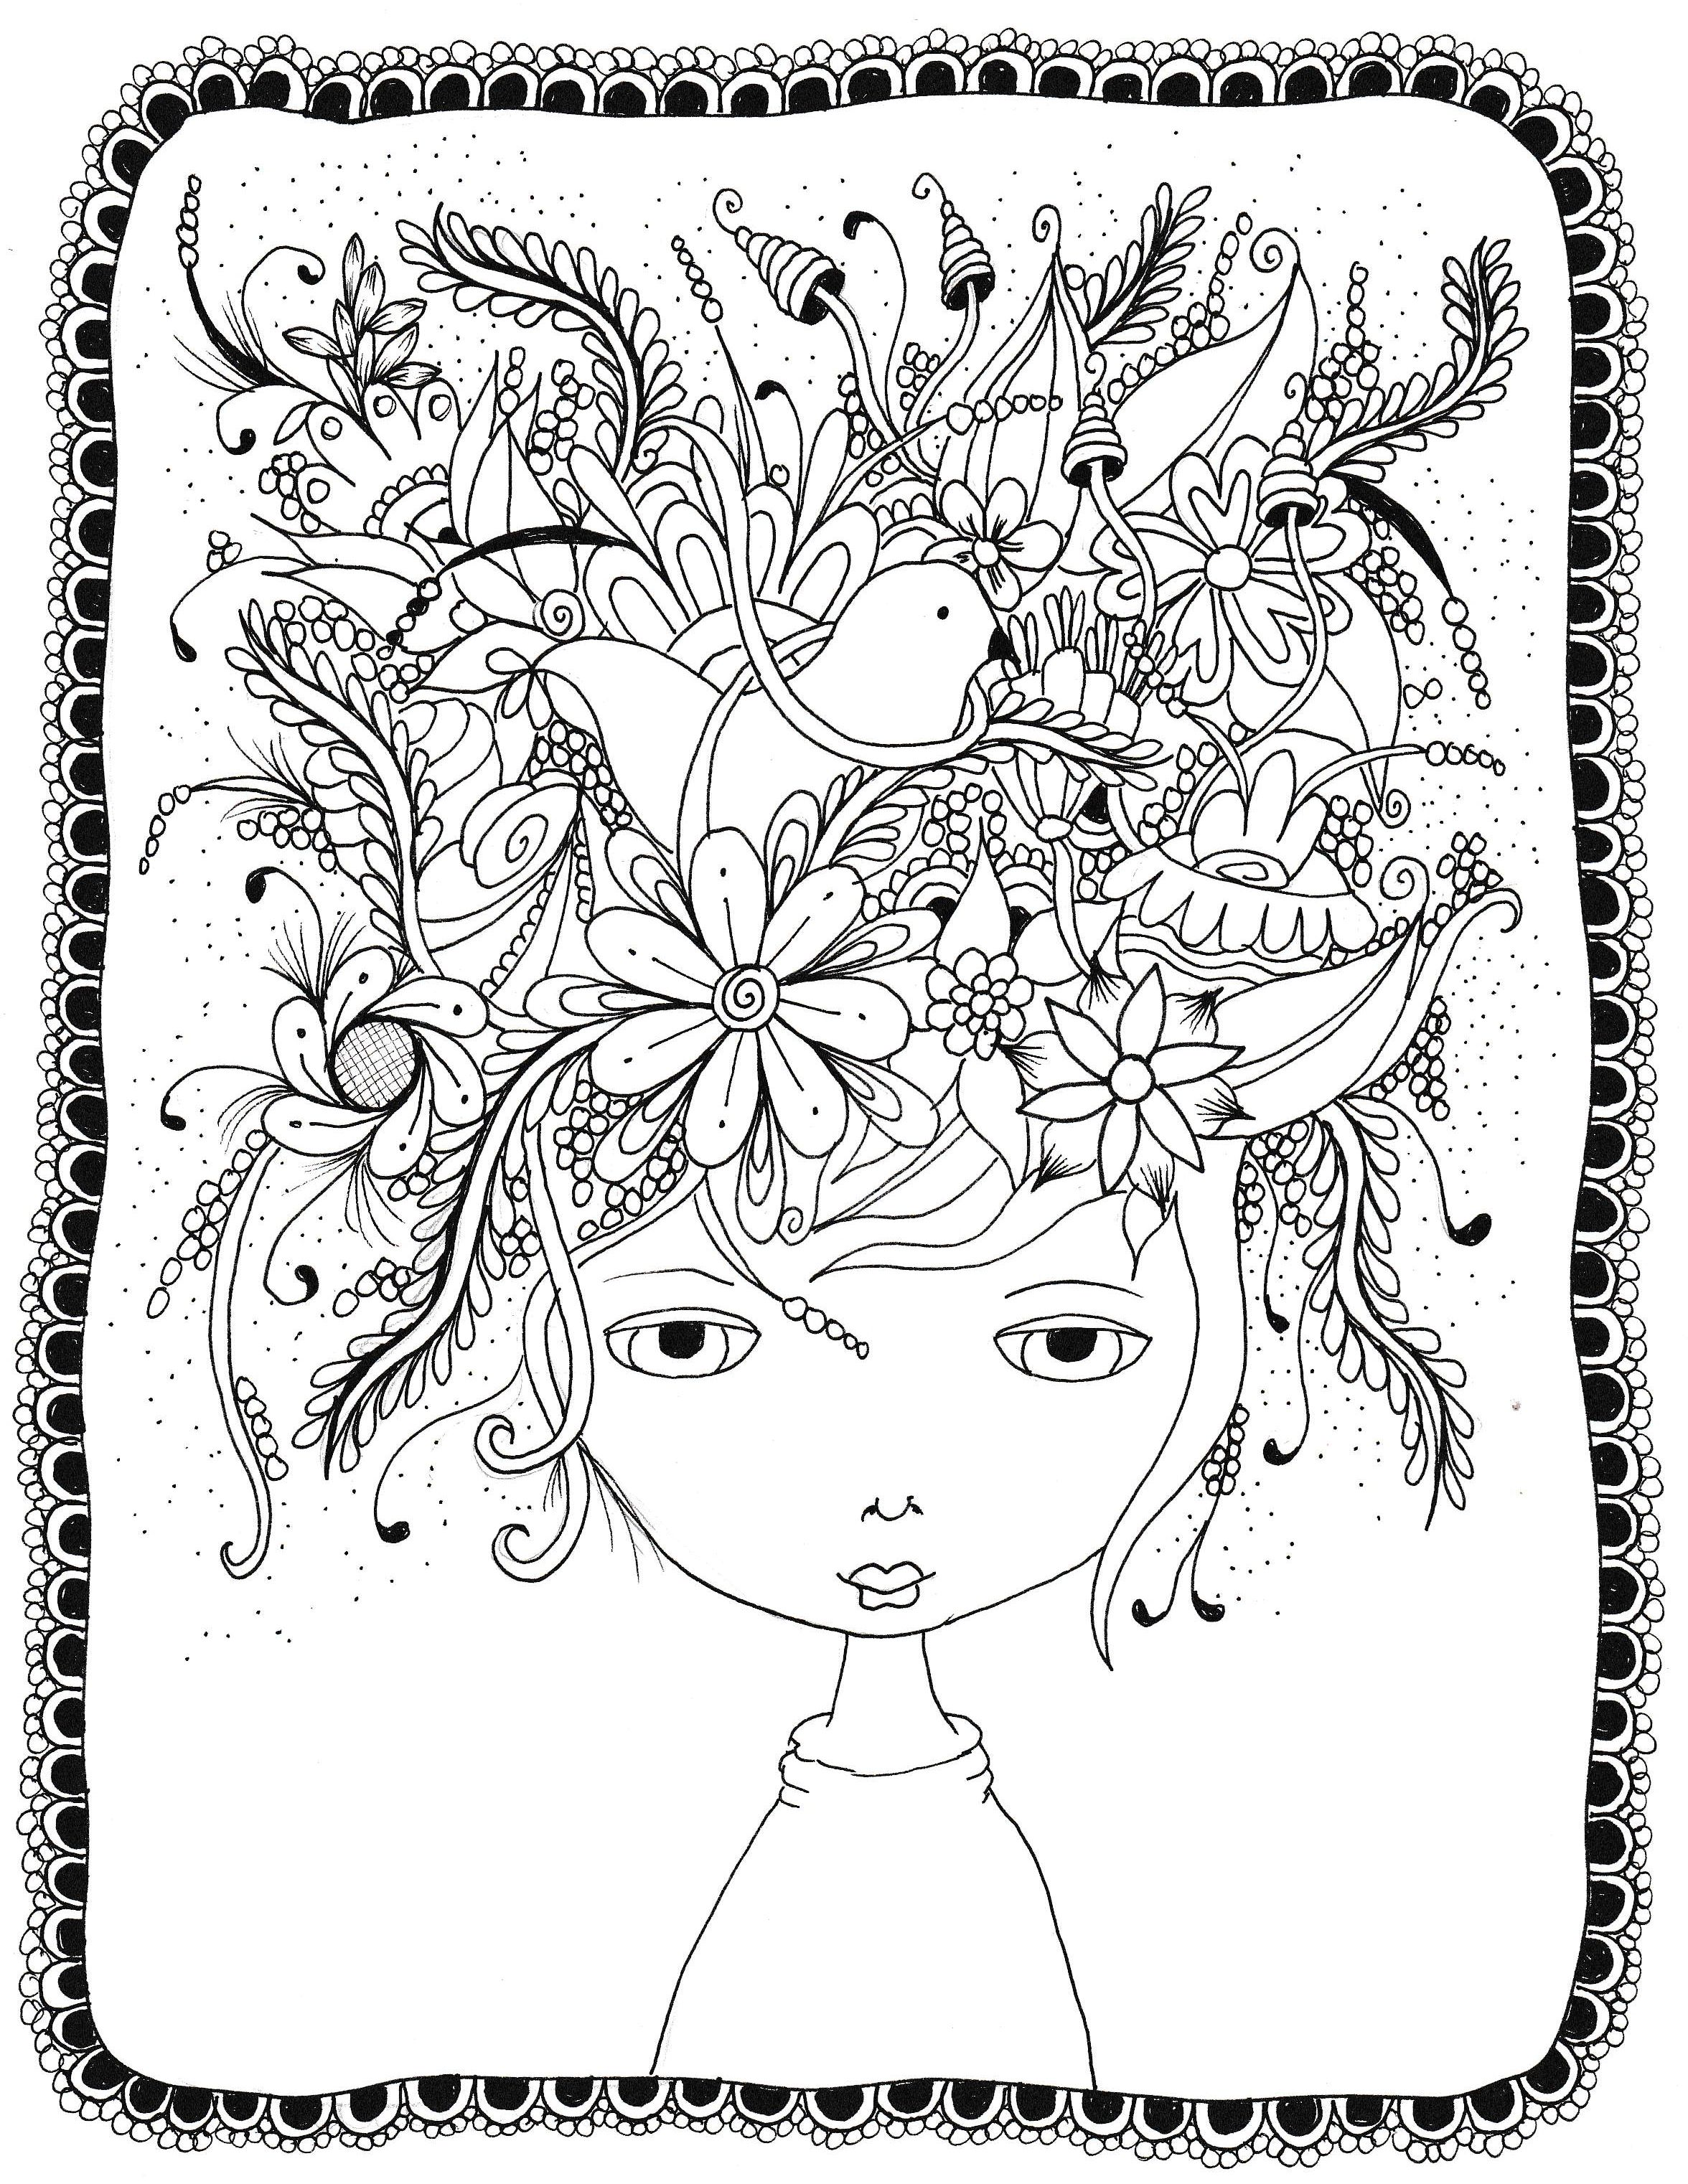 Crazy hair day doodle free coloring page for adults | Coloring ...